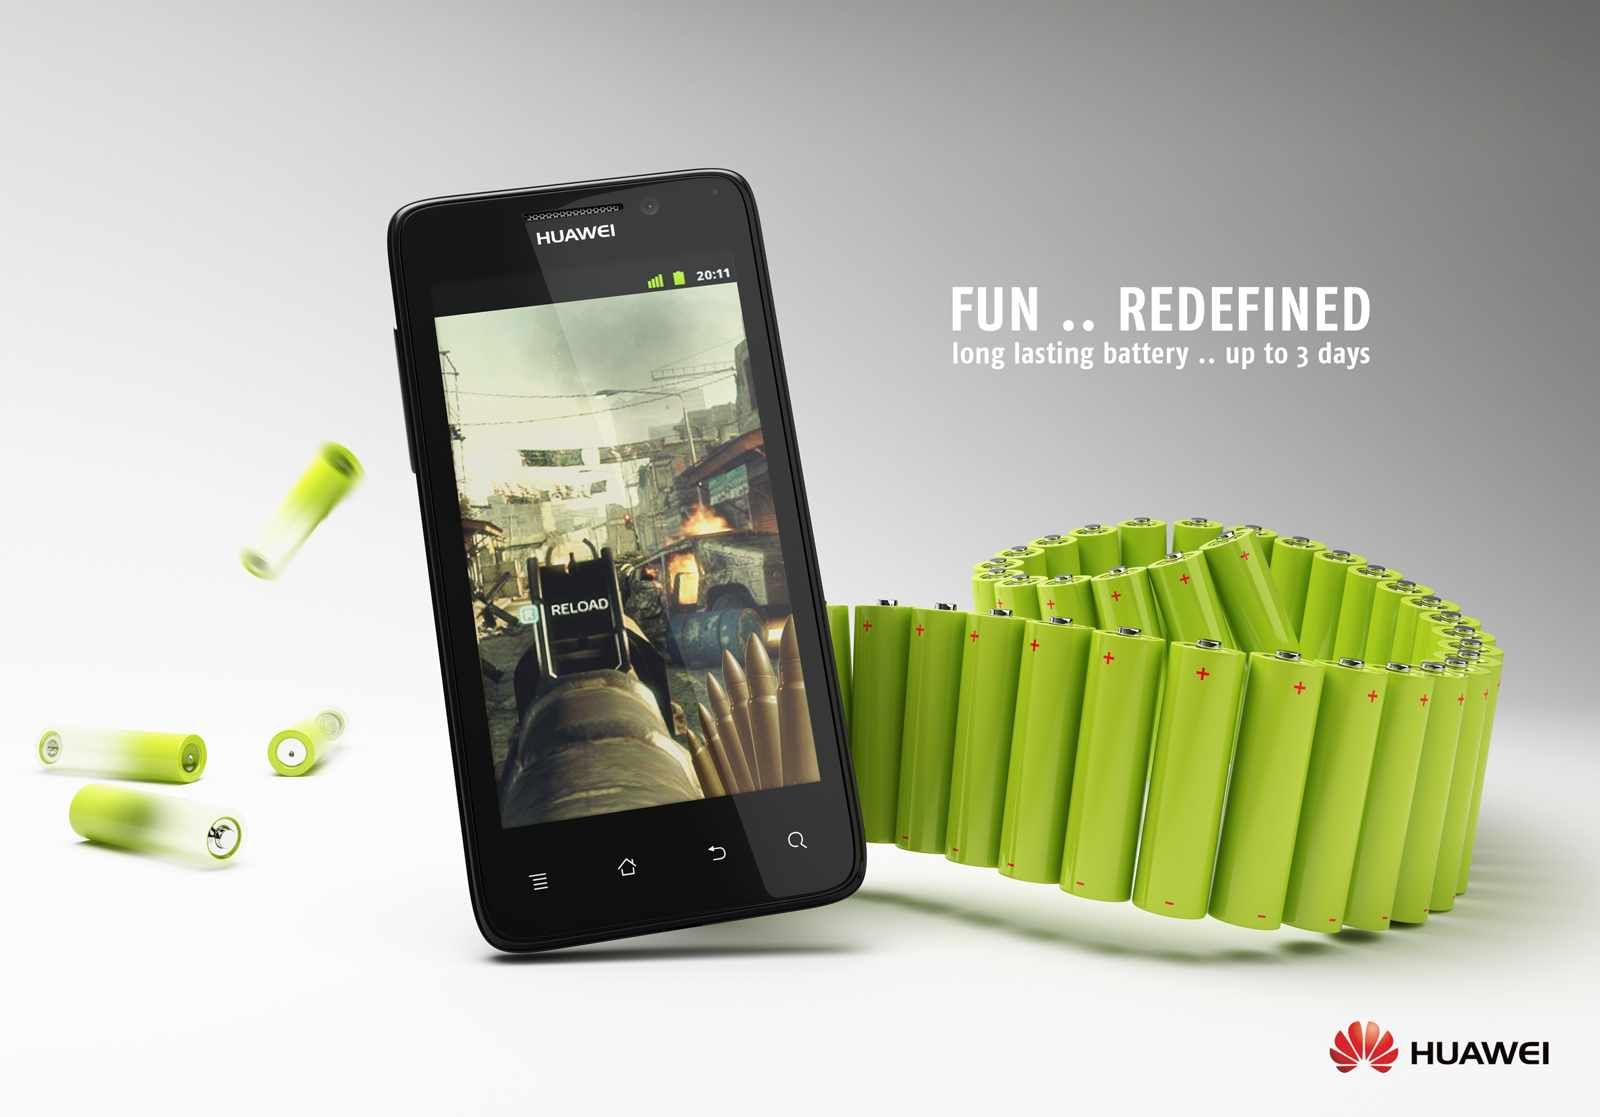 Huawei Fun redefined Print ads, Phone, Mobile marketing